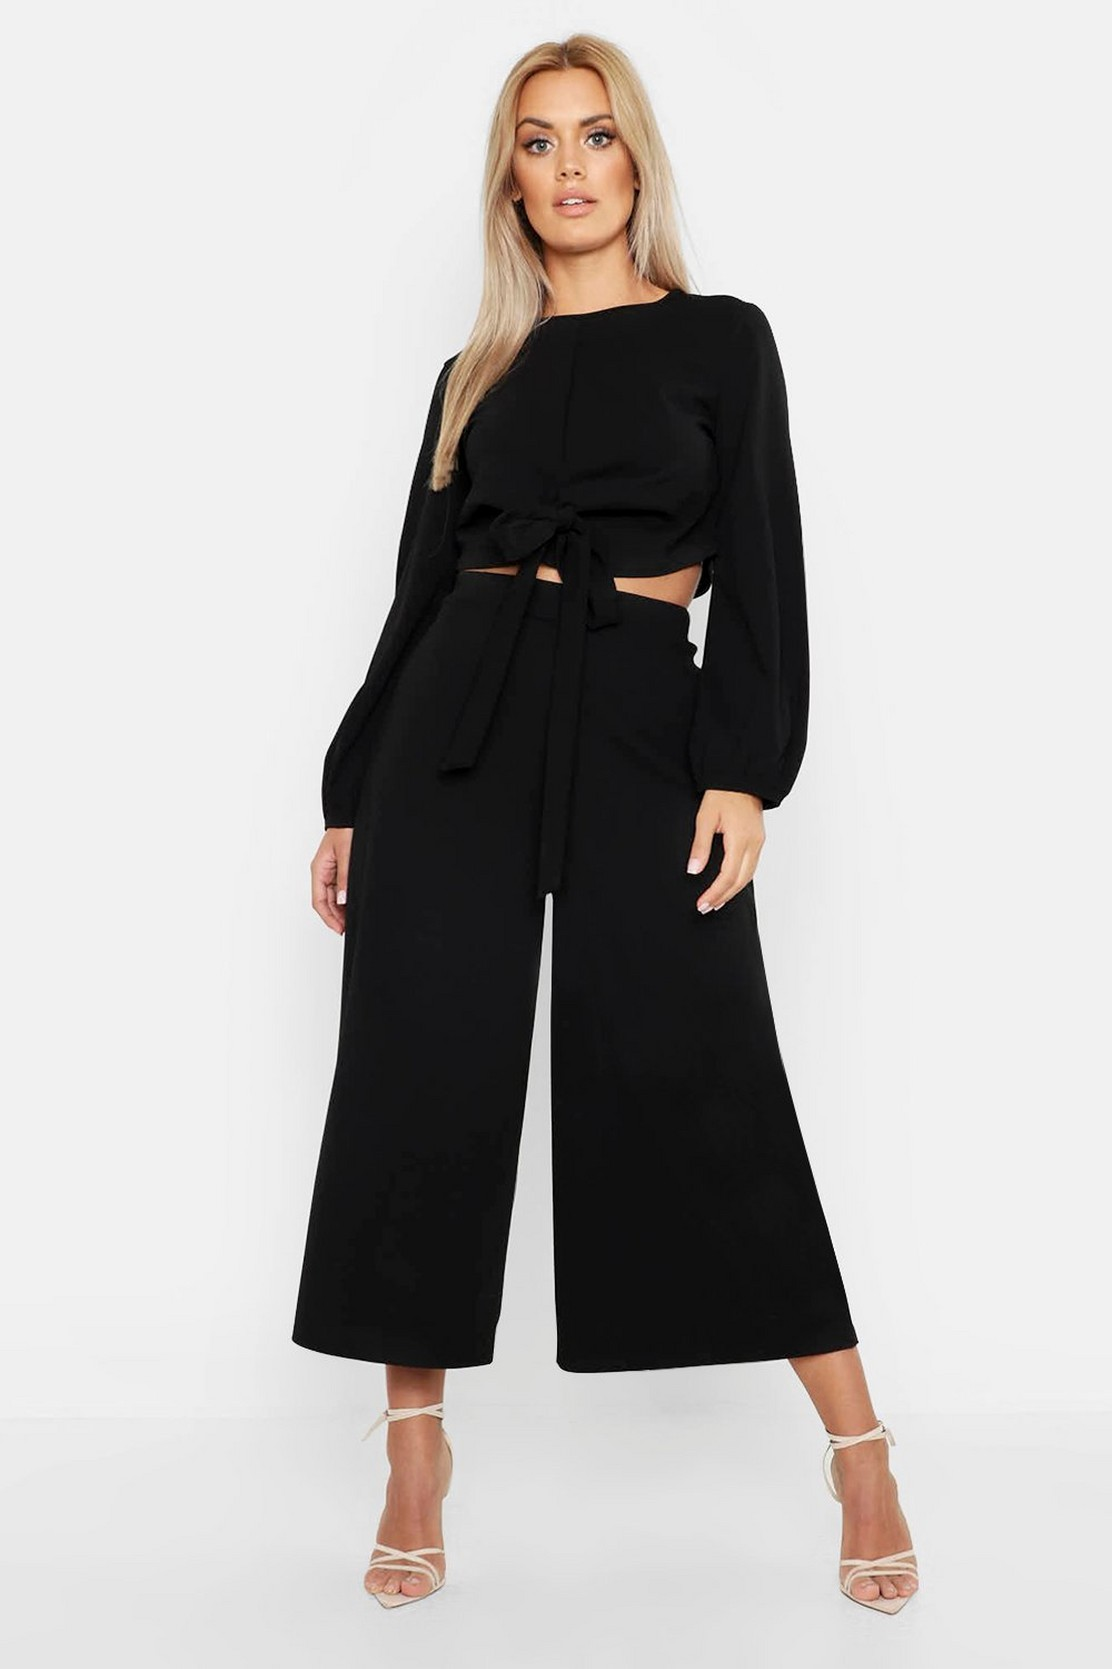 Boohoo wrap top and coulotte